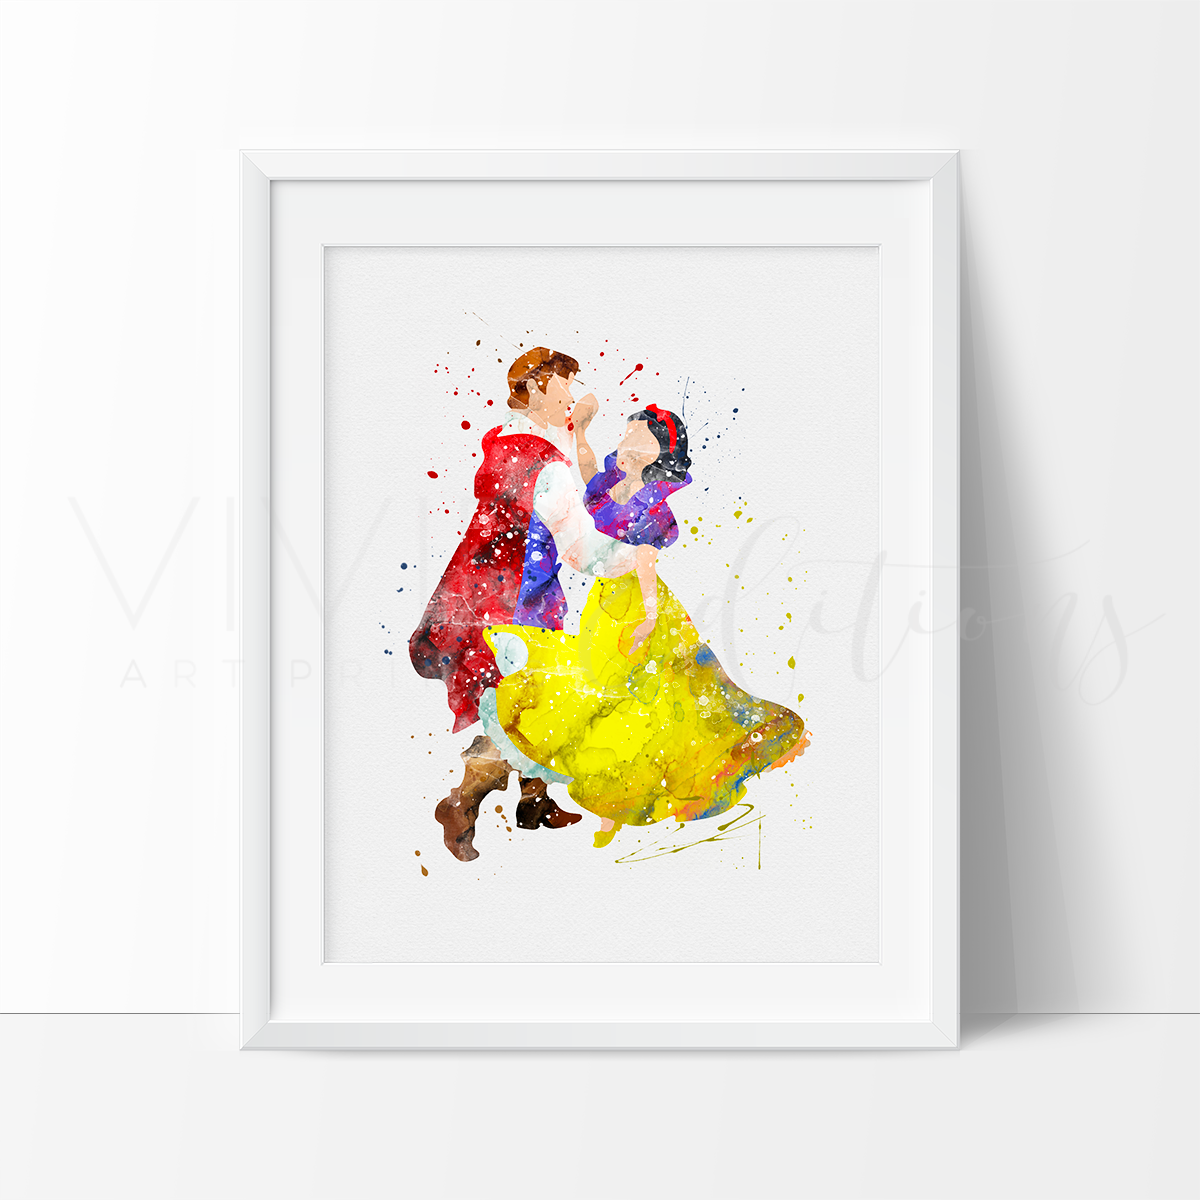 Snow White & The Prince Watercolor Art Print Art Print - VIVIDEDITIONS